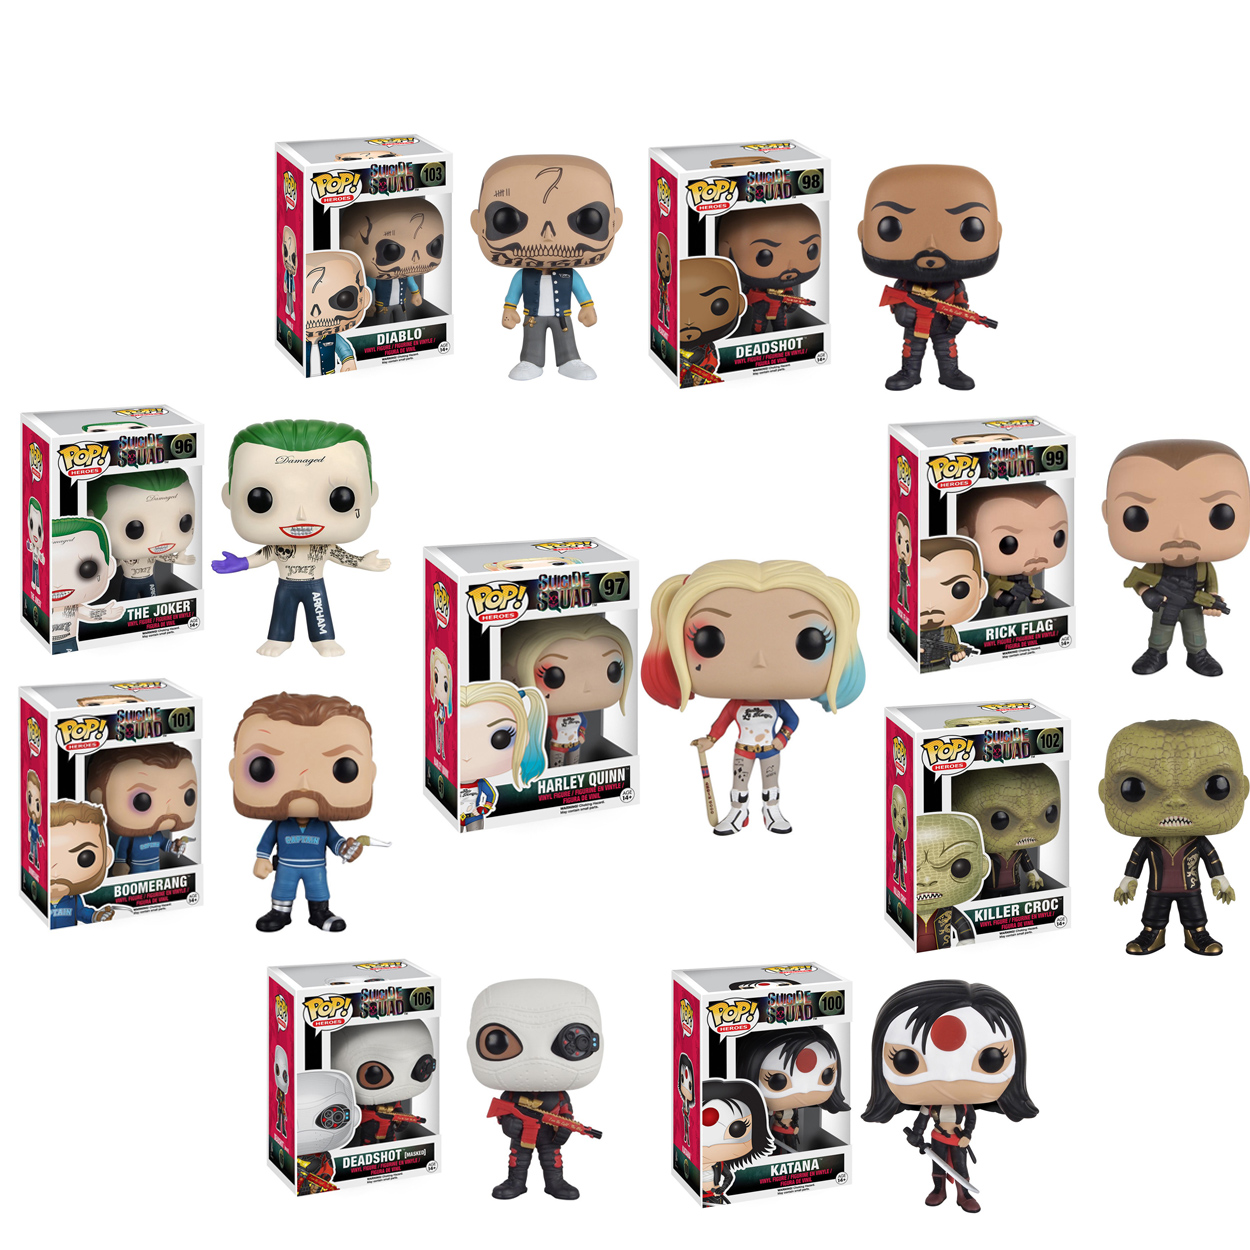 Funko <font><b>Pop</b></font> Original <font><b>Suicide</b></font> <font><b>Squad</b></font> Boomerang Joker Harley Quinn Deadshot Rick <font><b>Killer</b></font> <font><b>CROC</b></font> Katana Collectible <font><b>Vinyl</b></font> <font><b>Figure</b></font> Model